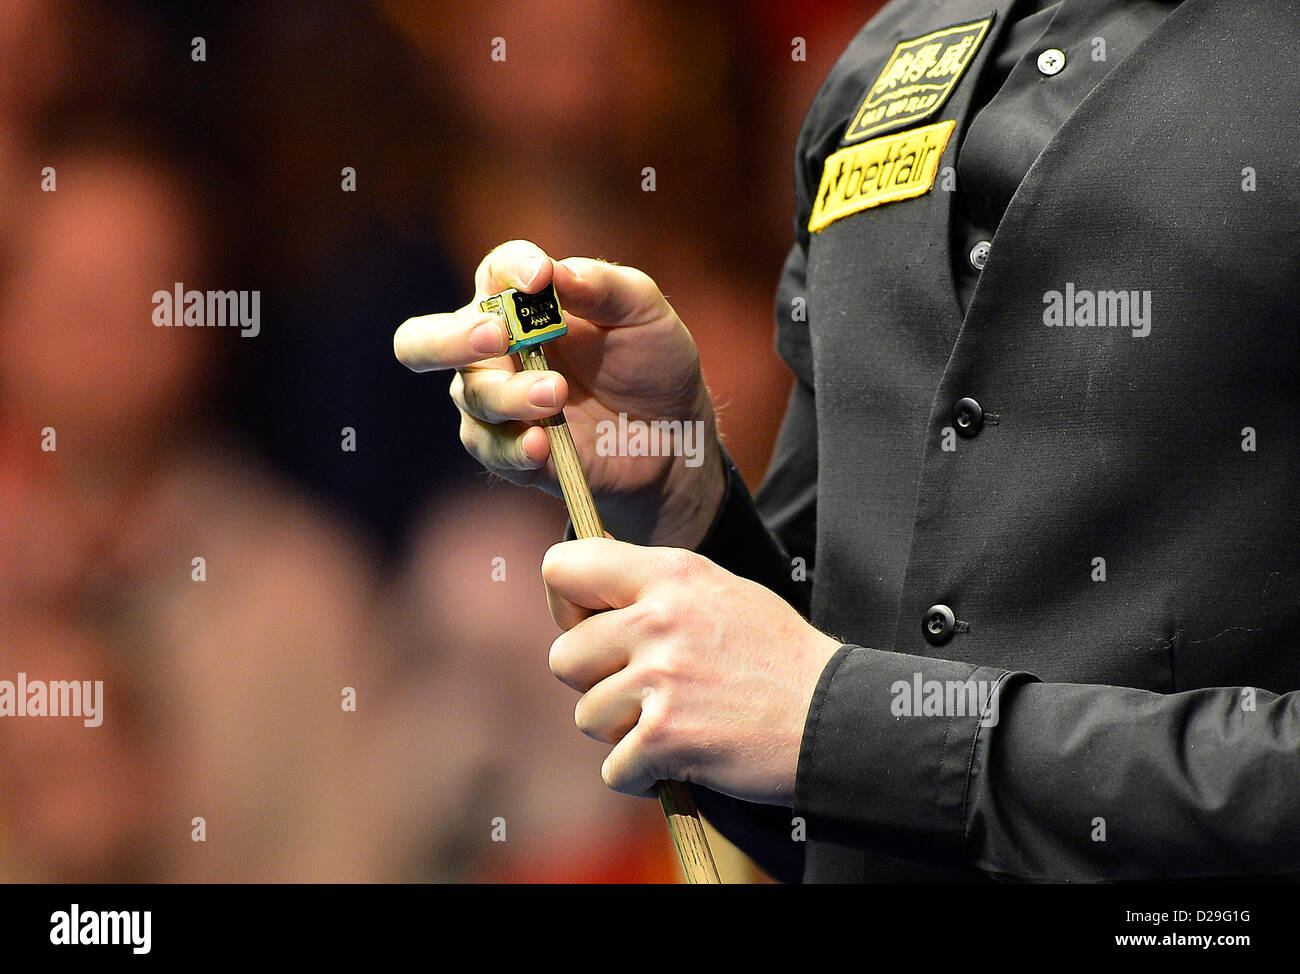 17.01.2013 London, England. Neil Robertson chalks his cue against Mark Allen during the Masters Snooker from Alexandra - Stock Image